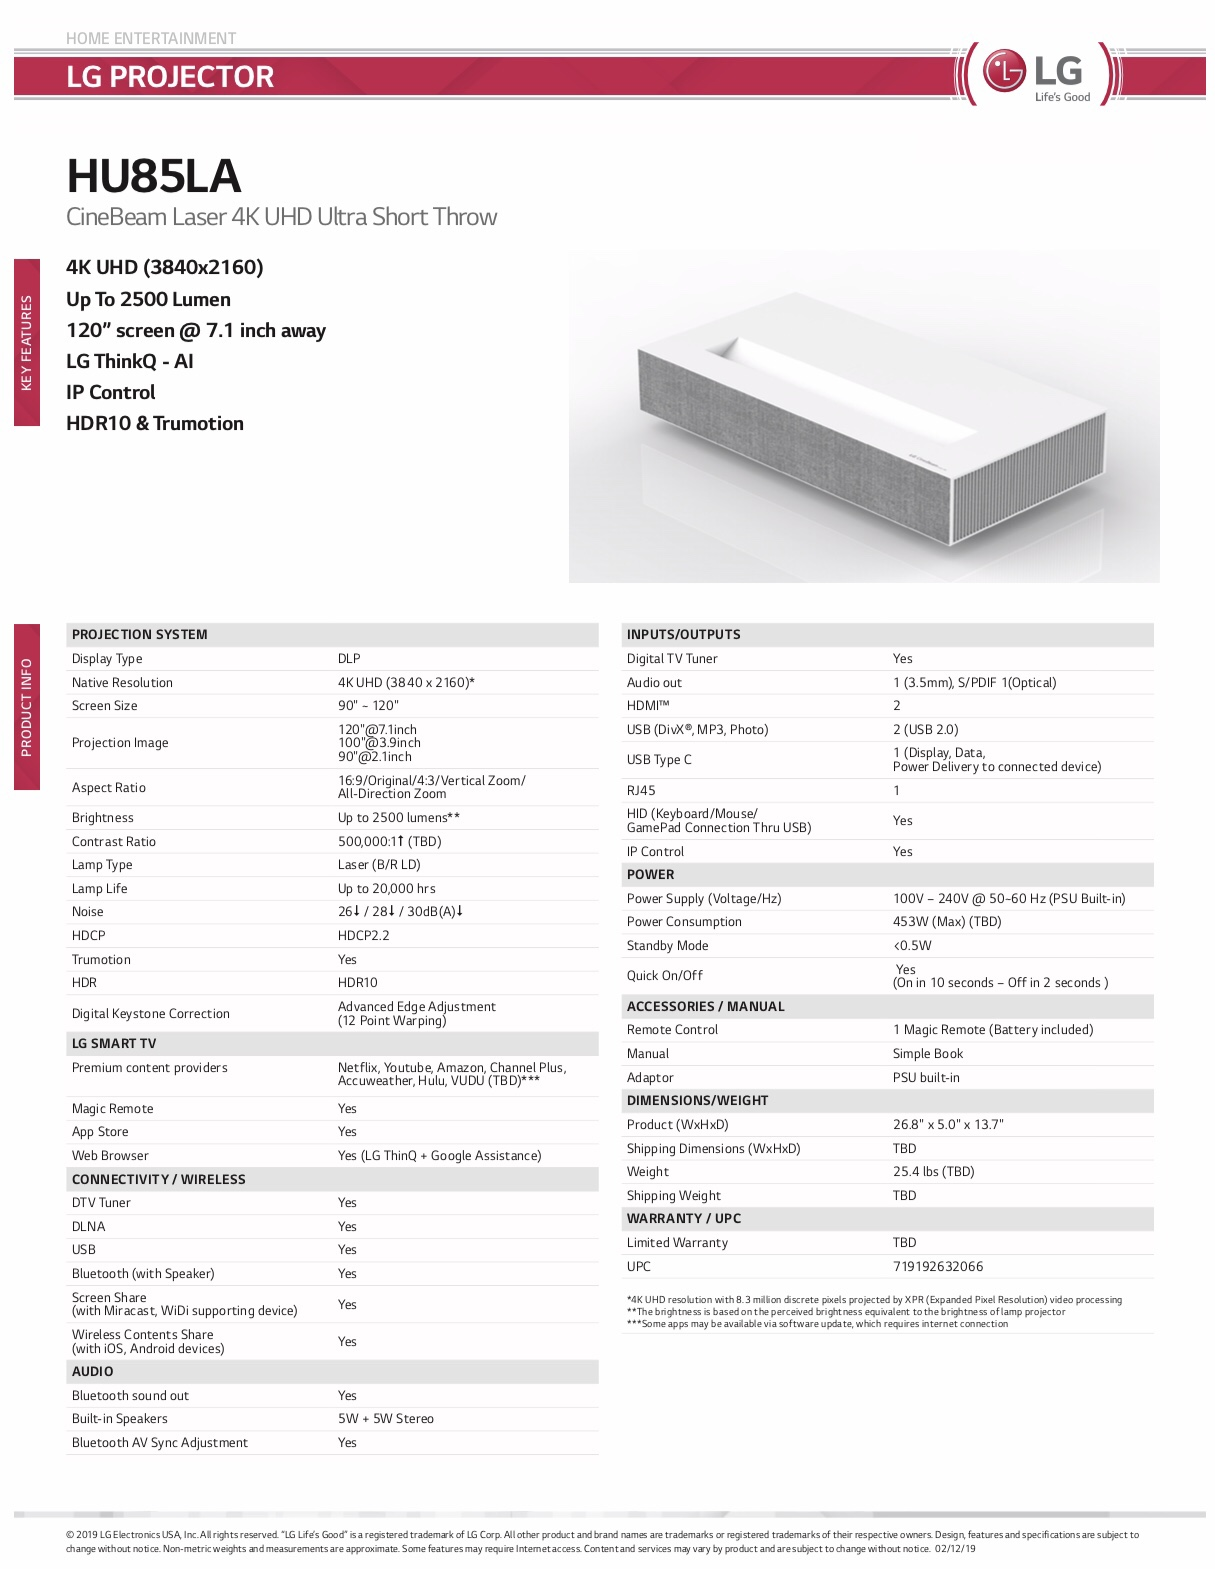 LG HU85L 4K Ultra Short Throw Projector Announced  - Page 4